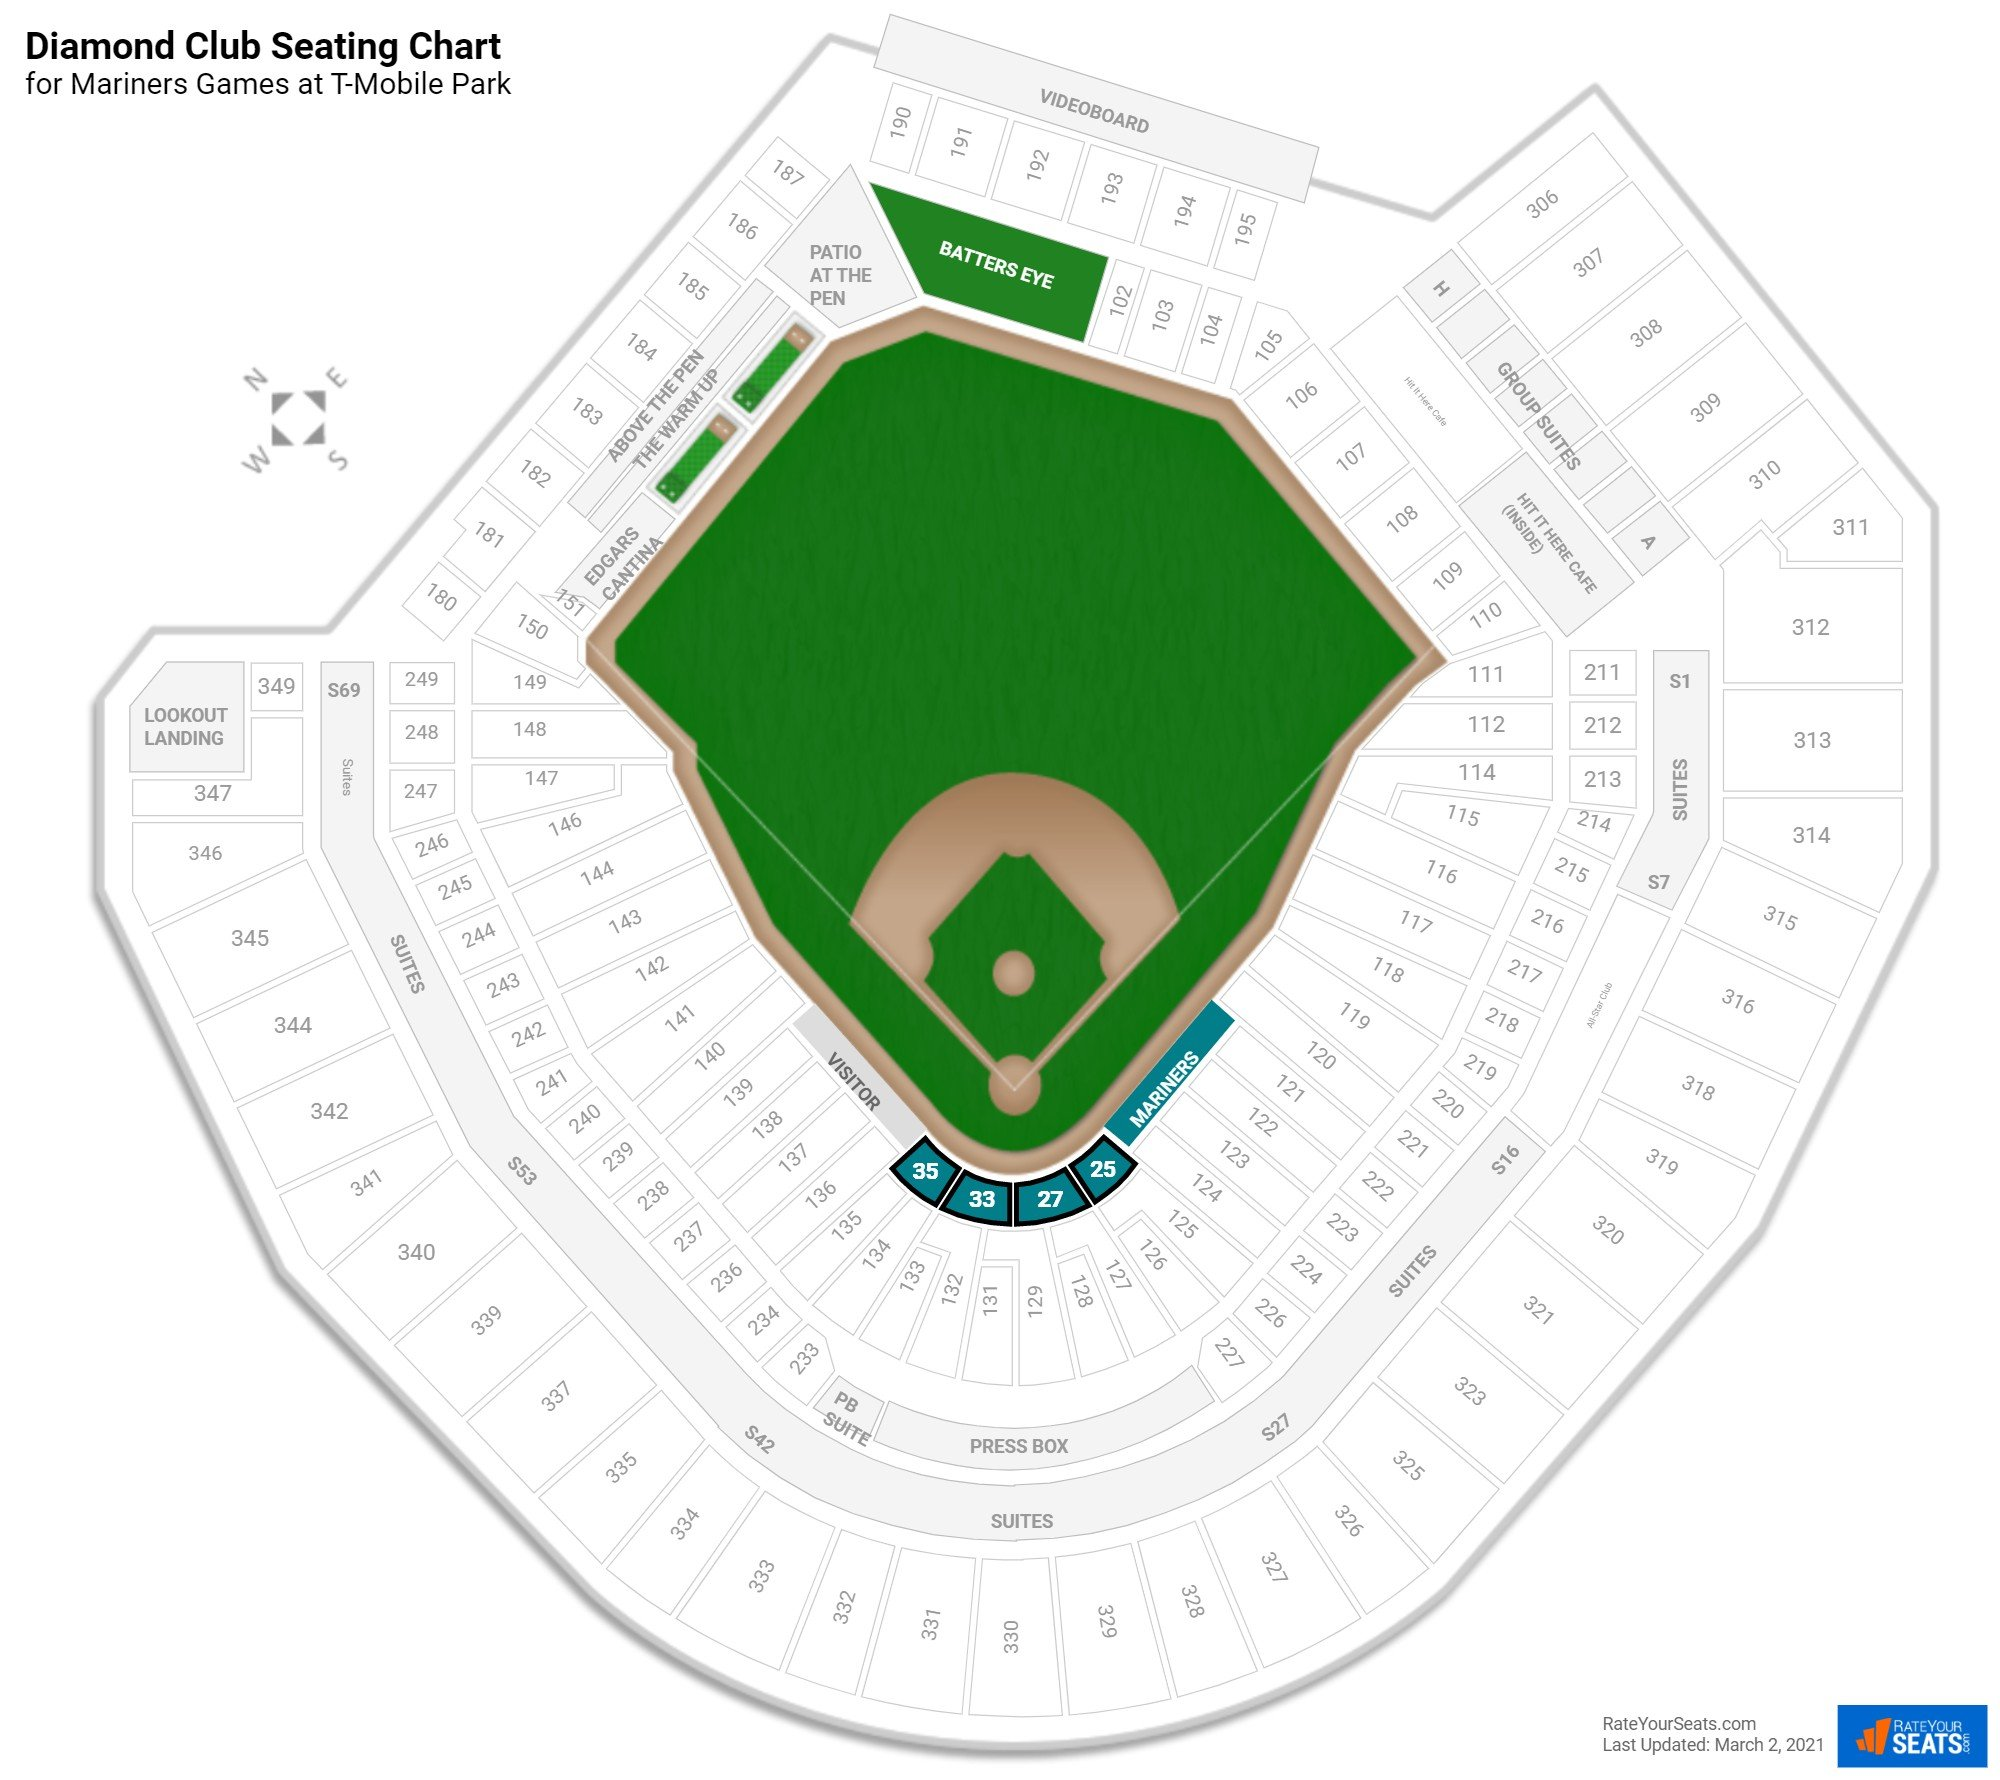 Safeco Field Diamond Club seating chart